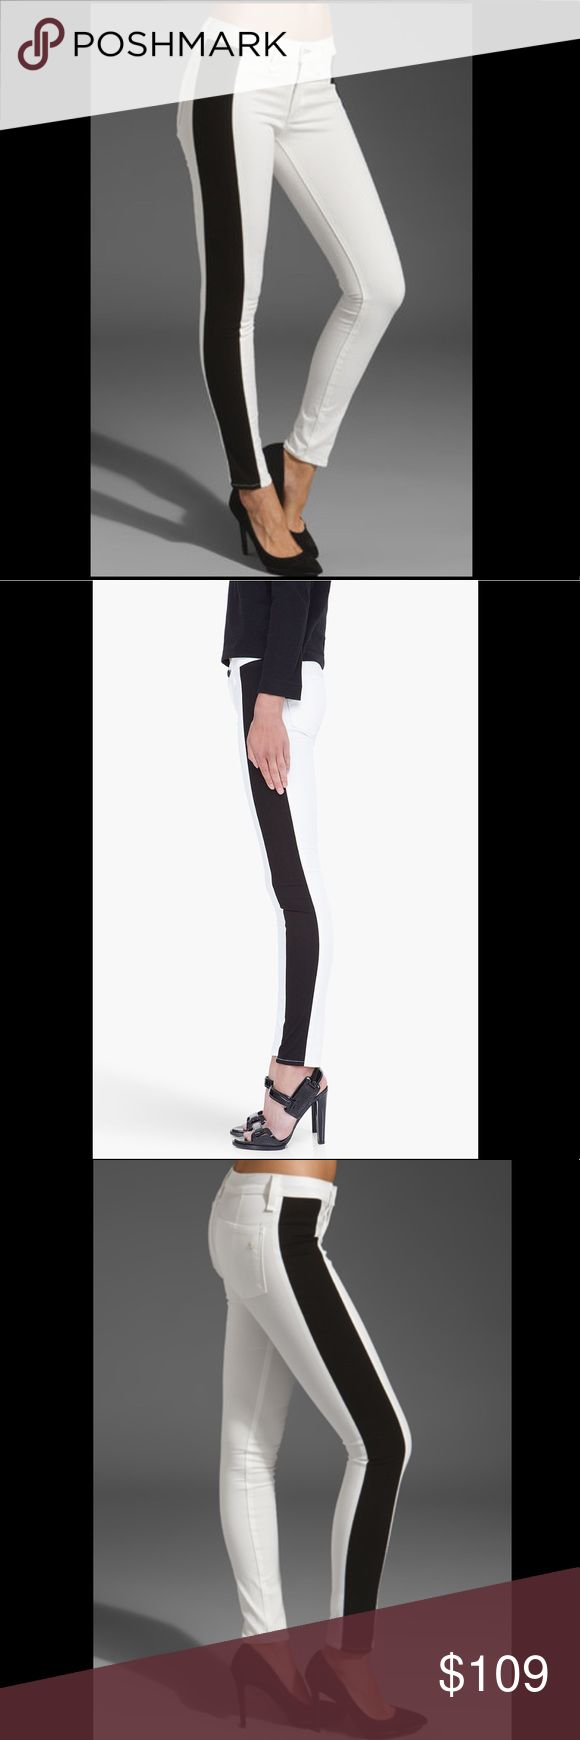 """Rag & Bone Split Tuxedo Stretch Skinny Jeans 28 Amazing and RARE Rag and Bone The Split Skinny Tuxedo Stripe Stretch Jeans in White with Black striped sides. Super Slimming and gorgeous on! Size 28. Retail price $225. from Shop Bop. Waist measures 14"""" across. Rise 8.5"""". Inseam 29"""". Leg opening 10"""". Mint condition with no flaws. No trades please 💕 rag & bone Jeans Skinny"""